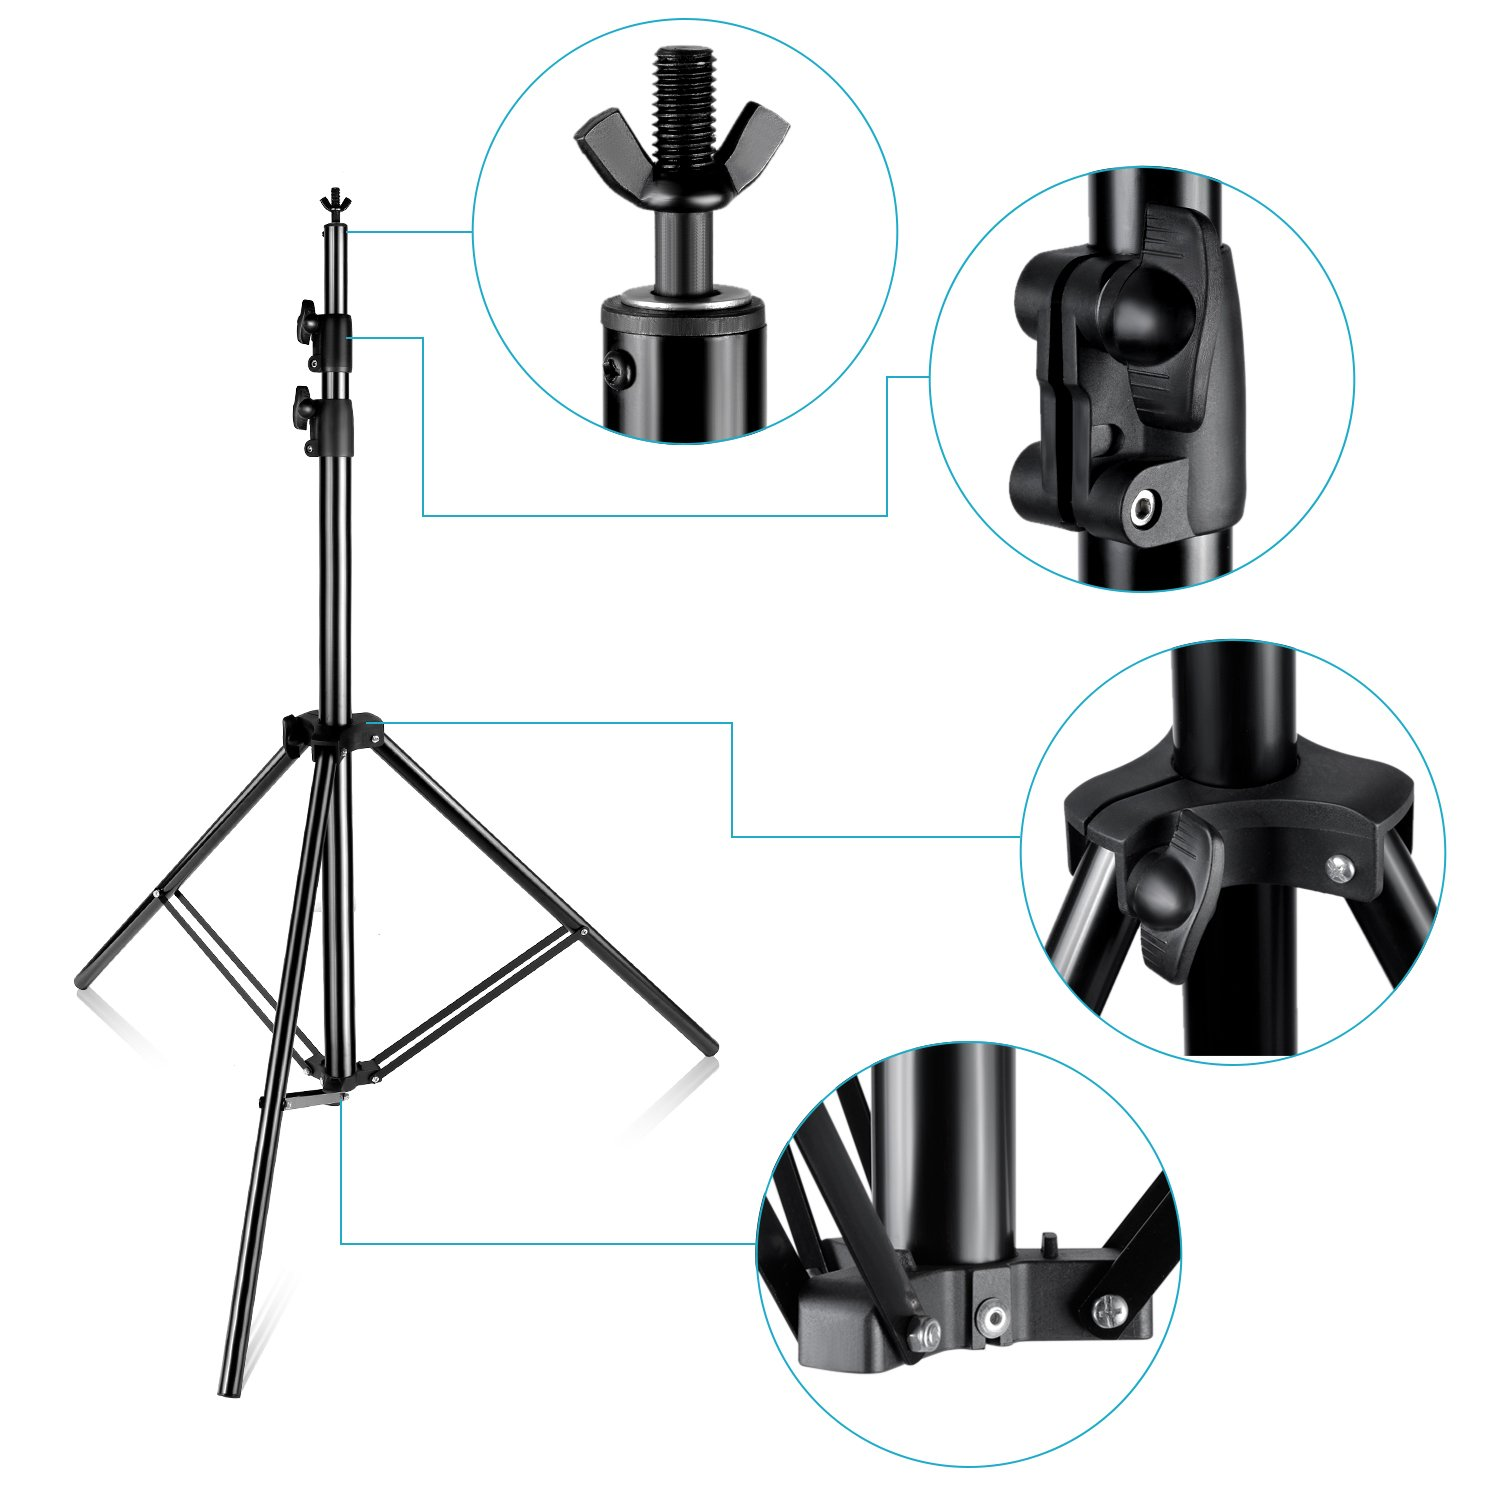 Neewer Pro 10x12 feet/3x3.6 Meters Heavy Duty Adjustable Backdrop Support System Photography Studio Video Stand with Carrying Bag for Backdrop Background by Neewer (Image #7)